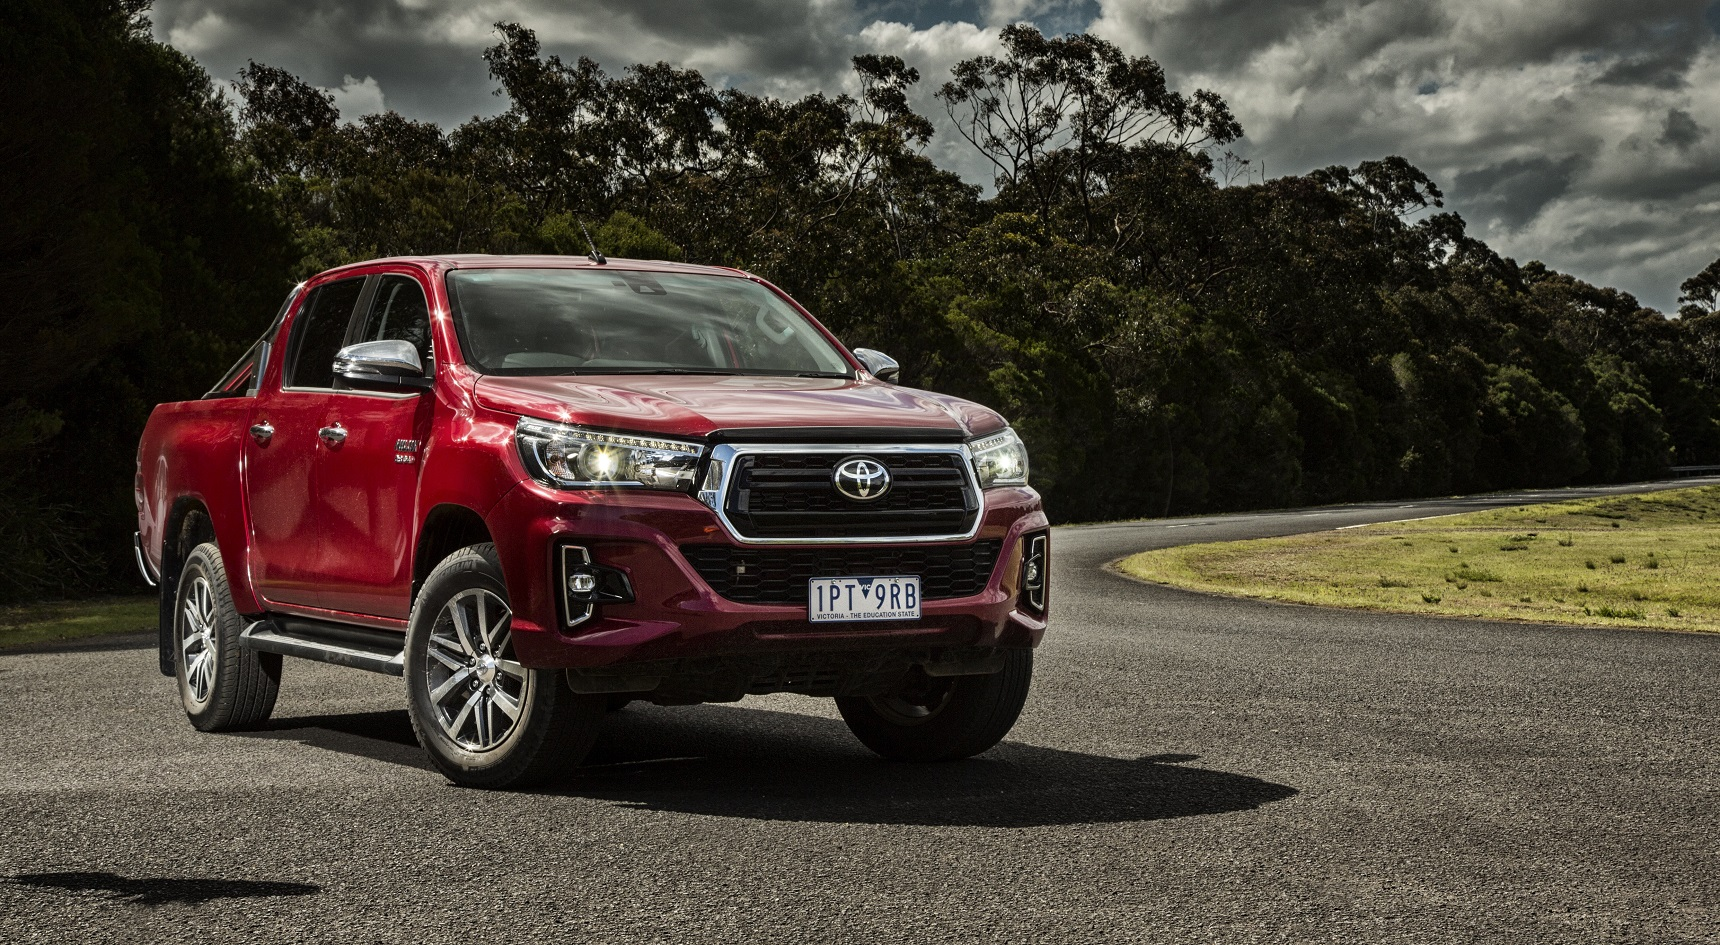 The HiLux trumps its rivals for safety, carrying a five-star ANCAP crash rating.